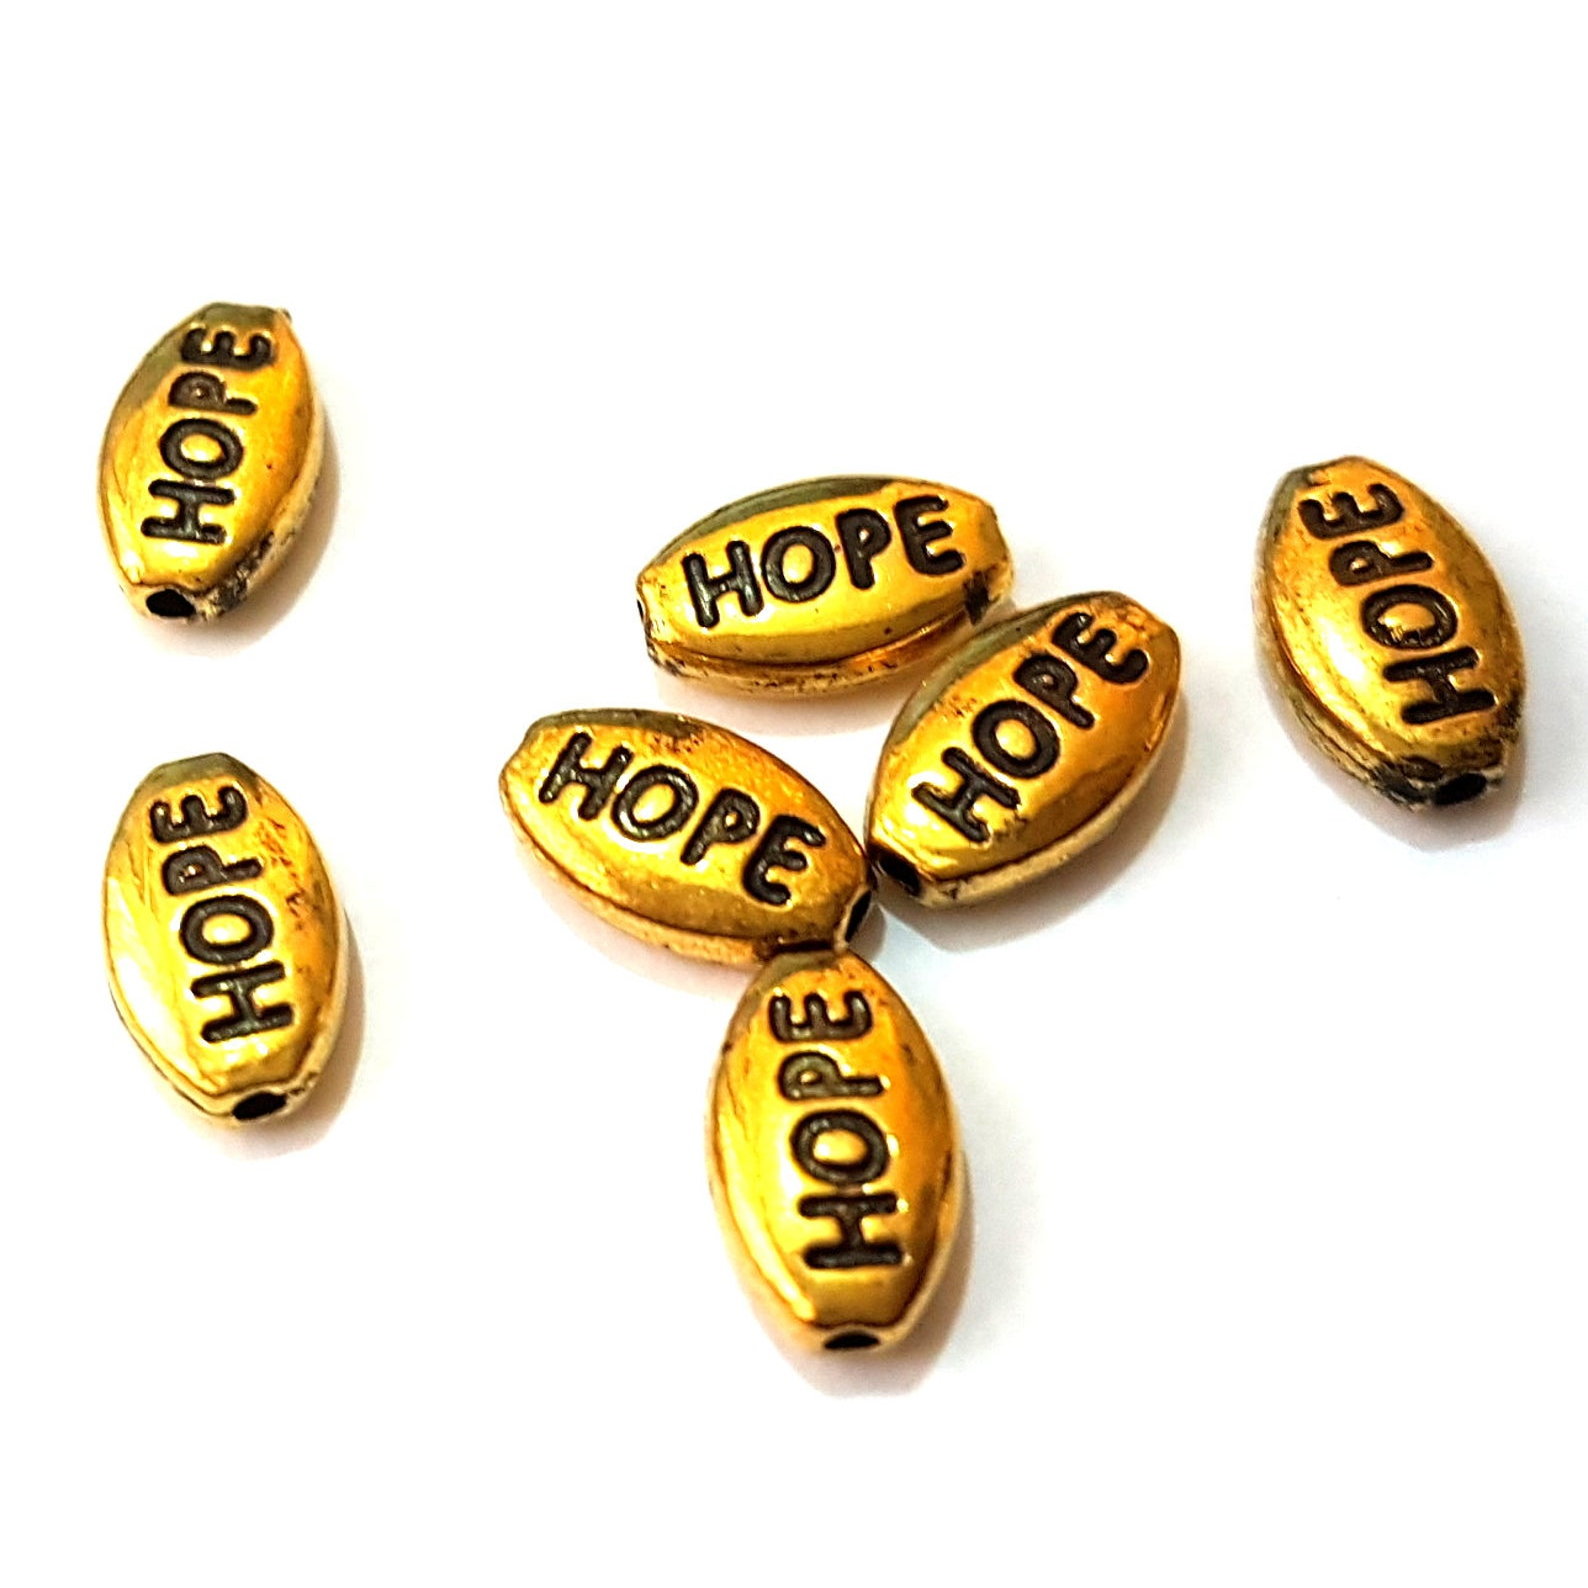 etsy dojore gold hope beads rebel jewel rebeljewel